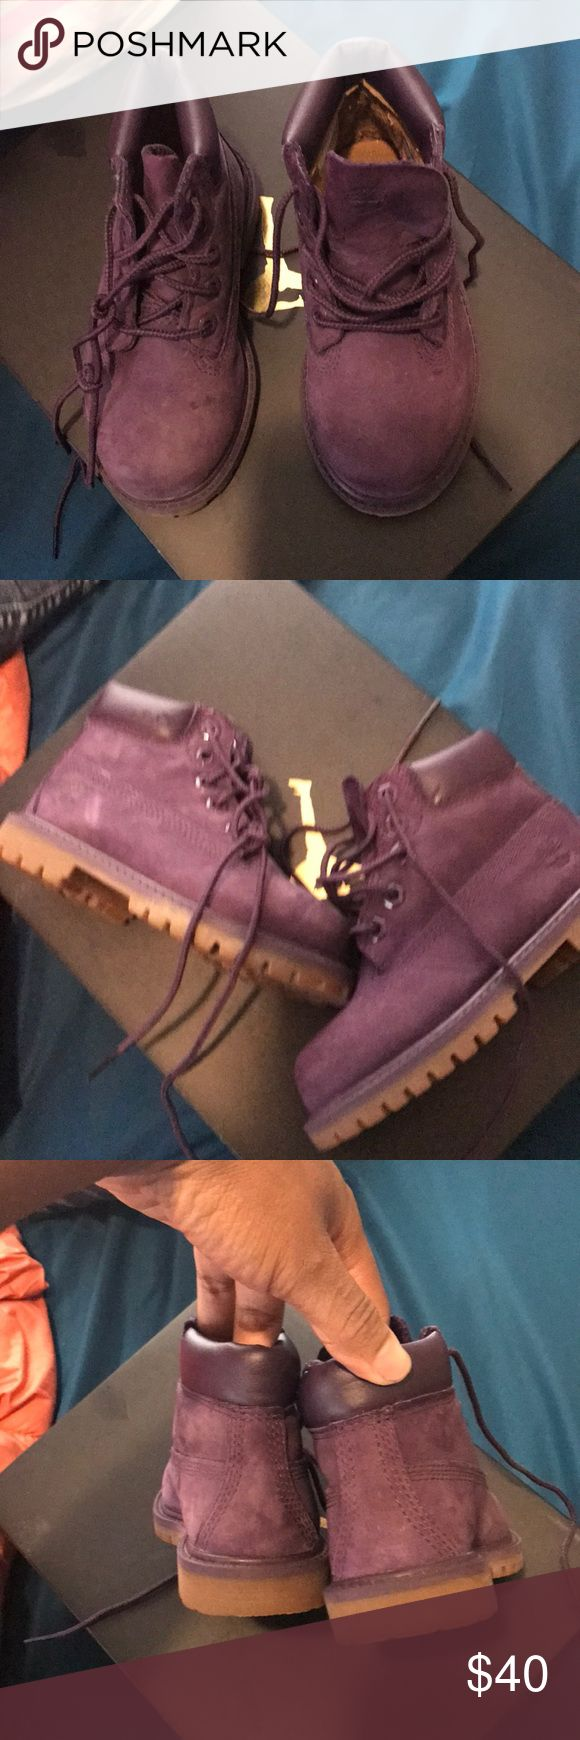 Toddlers Timberlands Purple size 8 timberlands for girls. Great condition! Timberland Shoes Boots